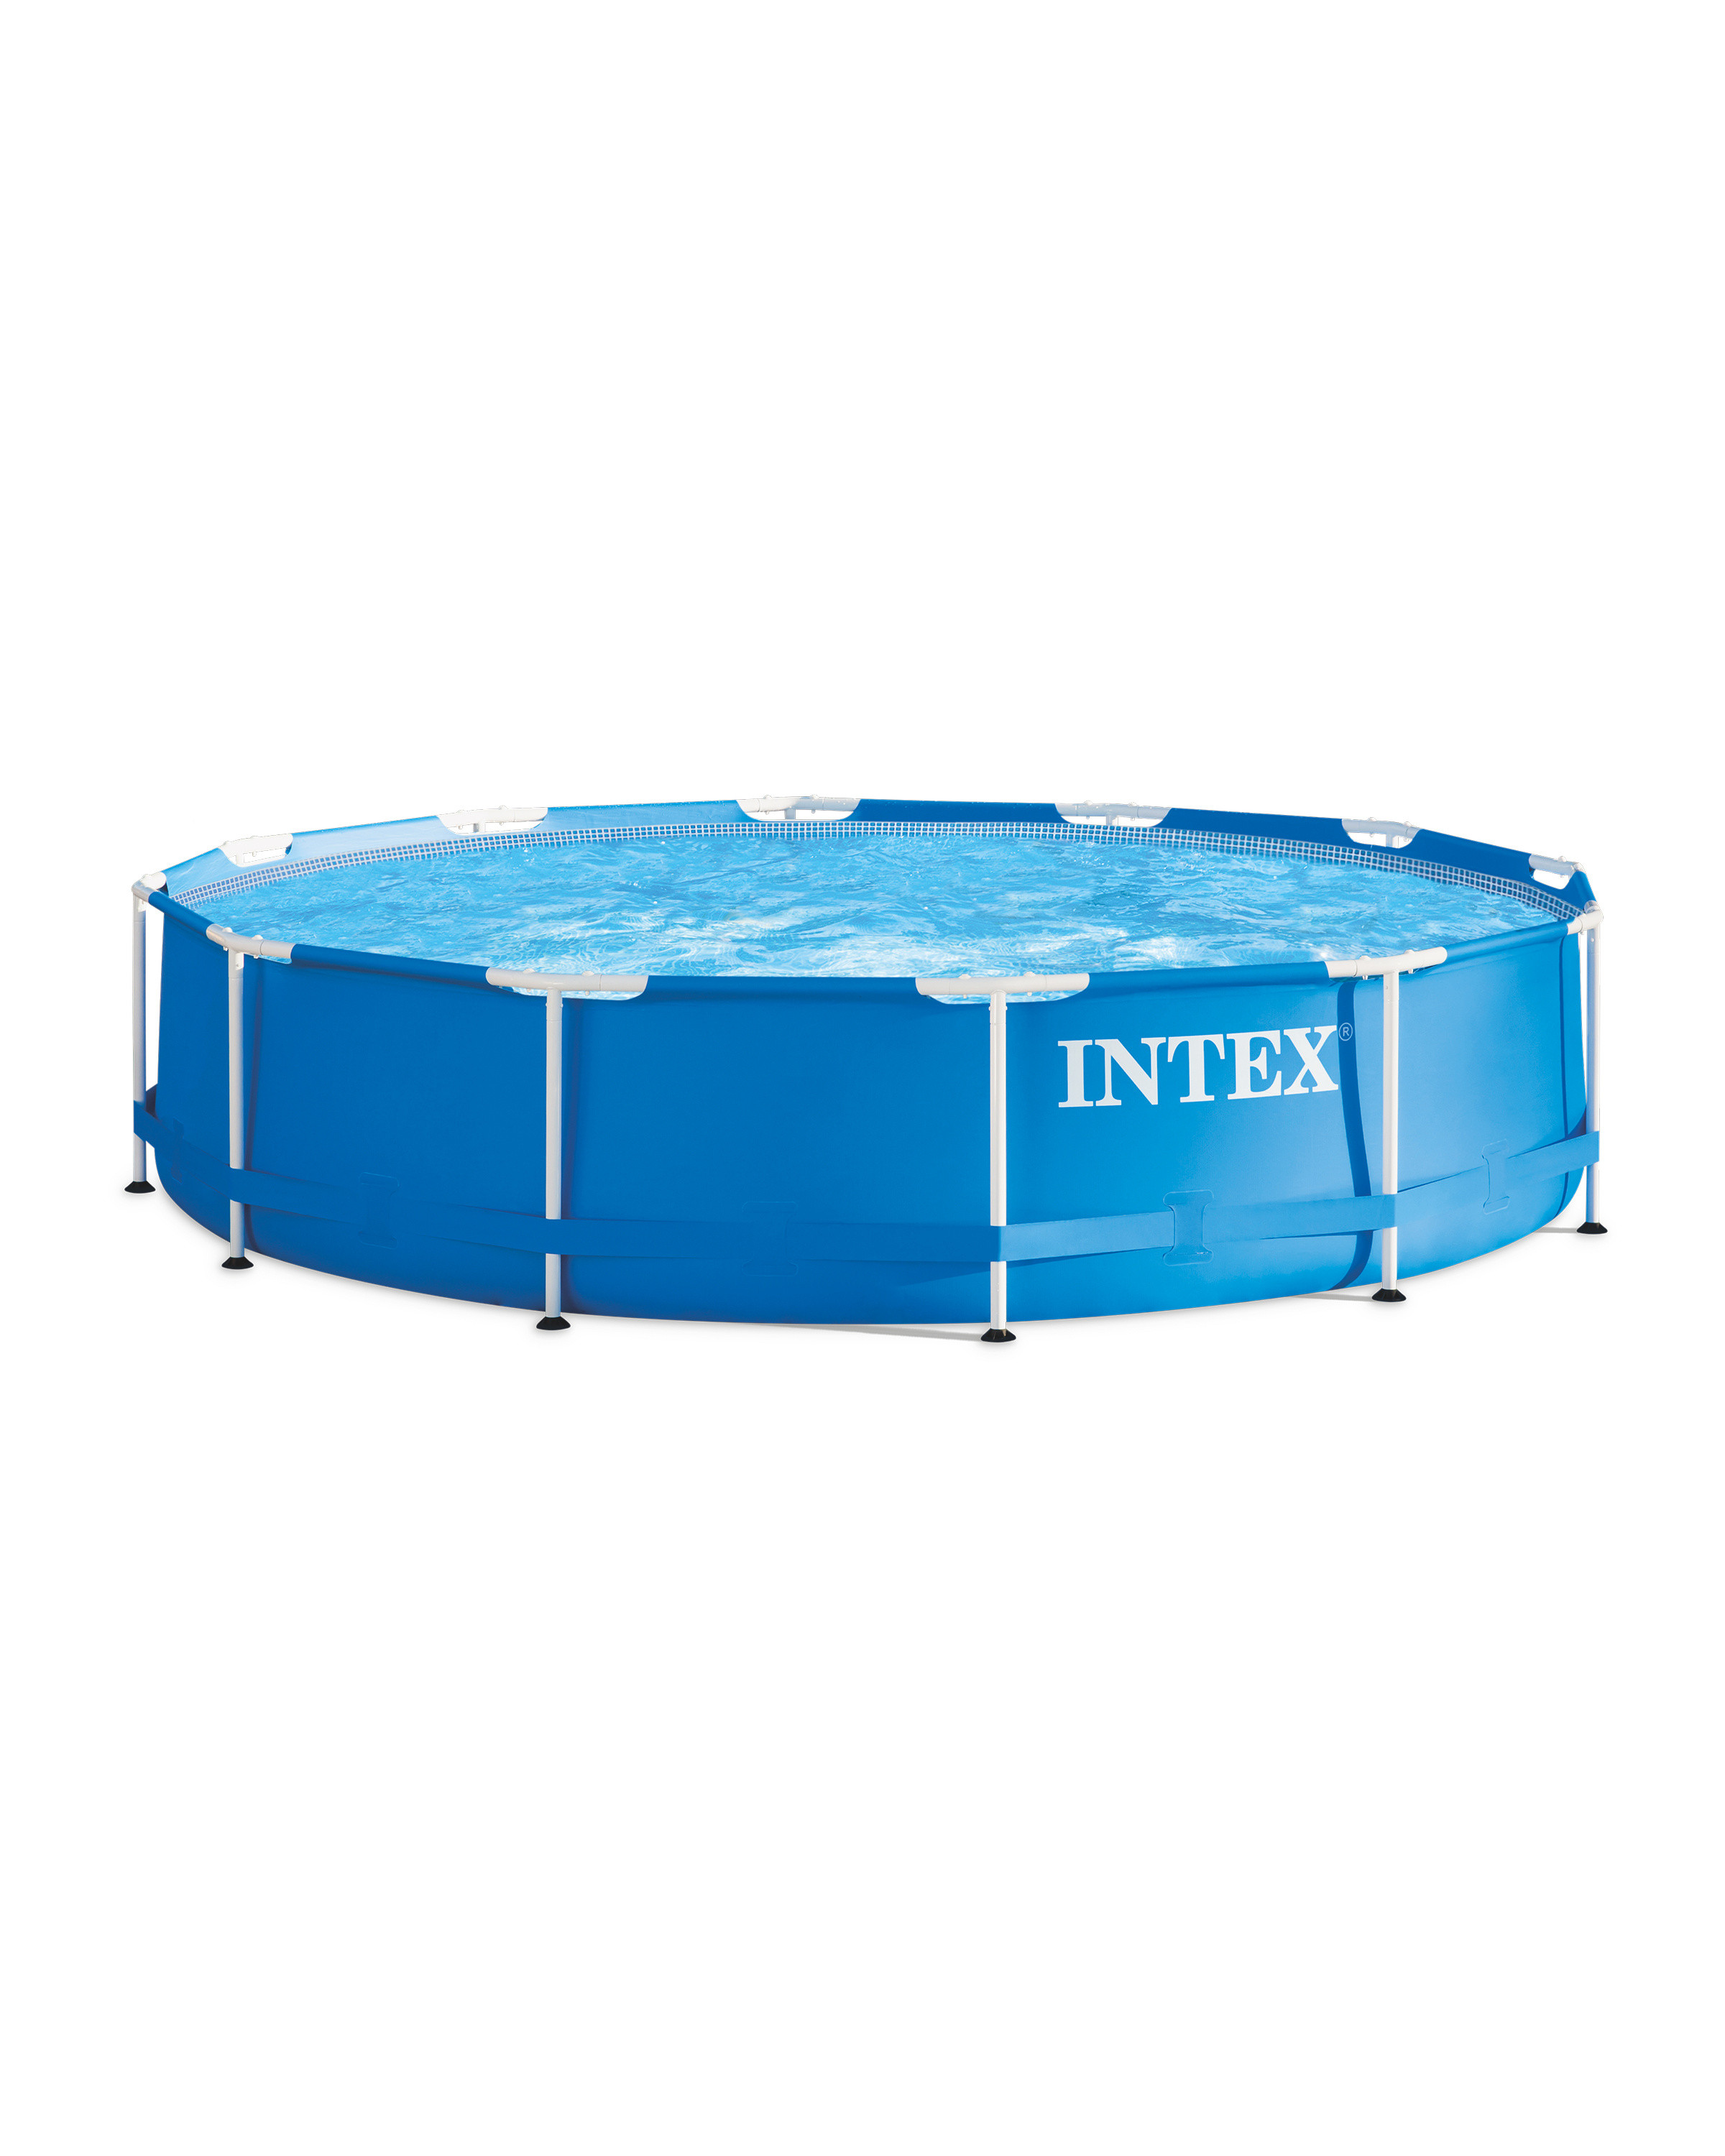 Intex 12 foot Metal Swimming Pool - ALDI UK